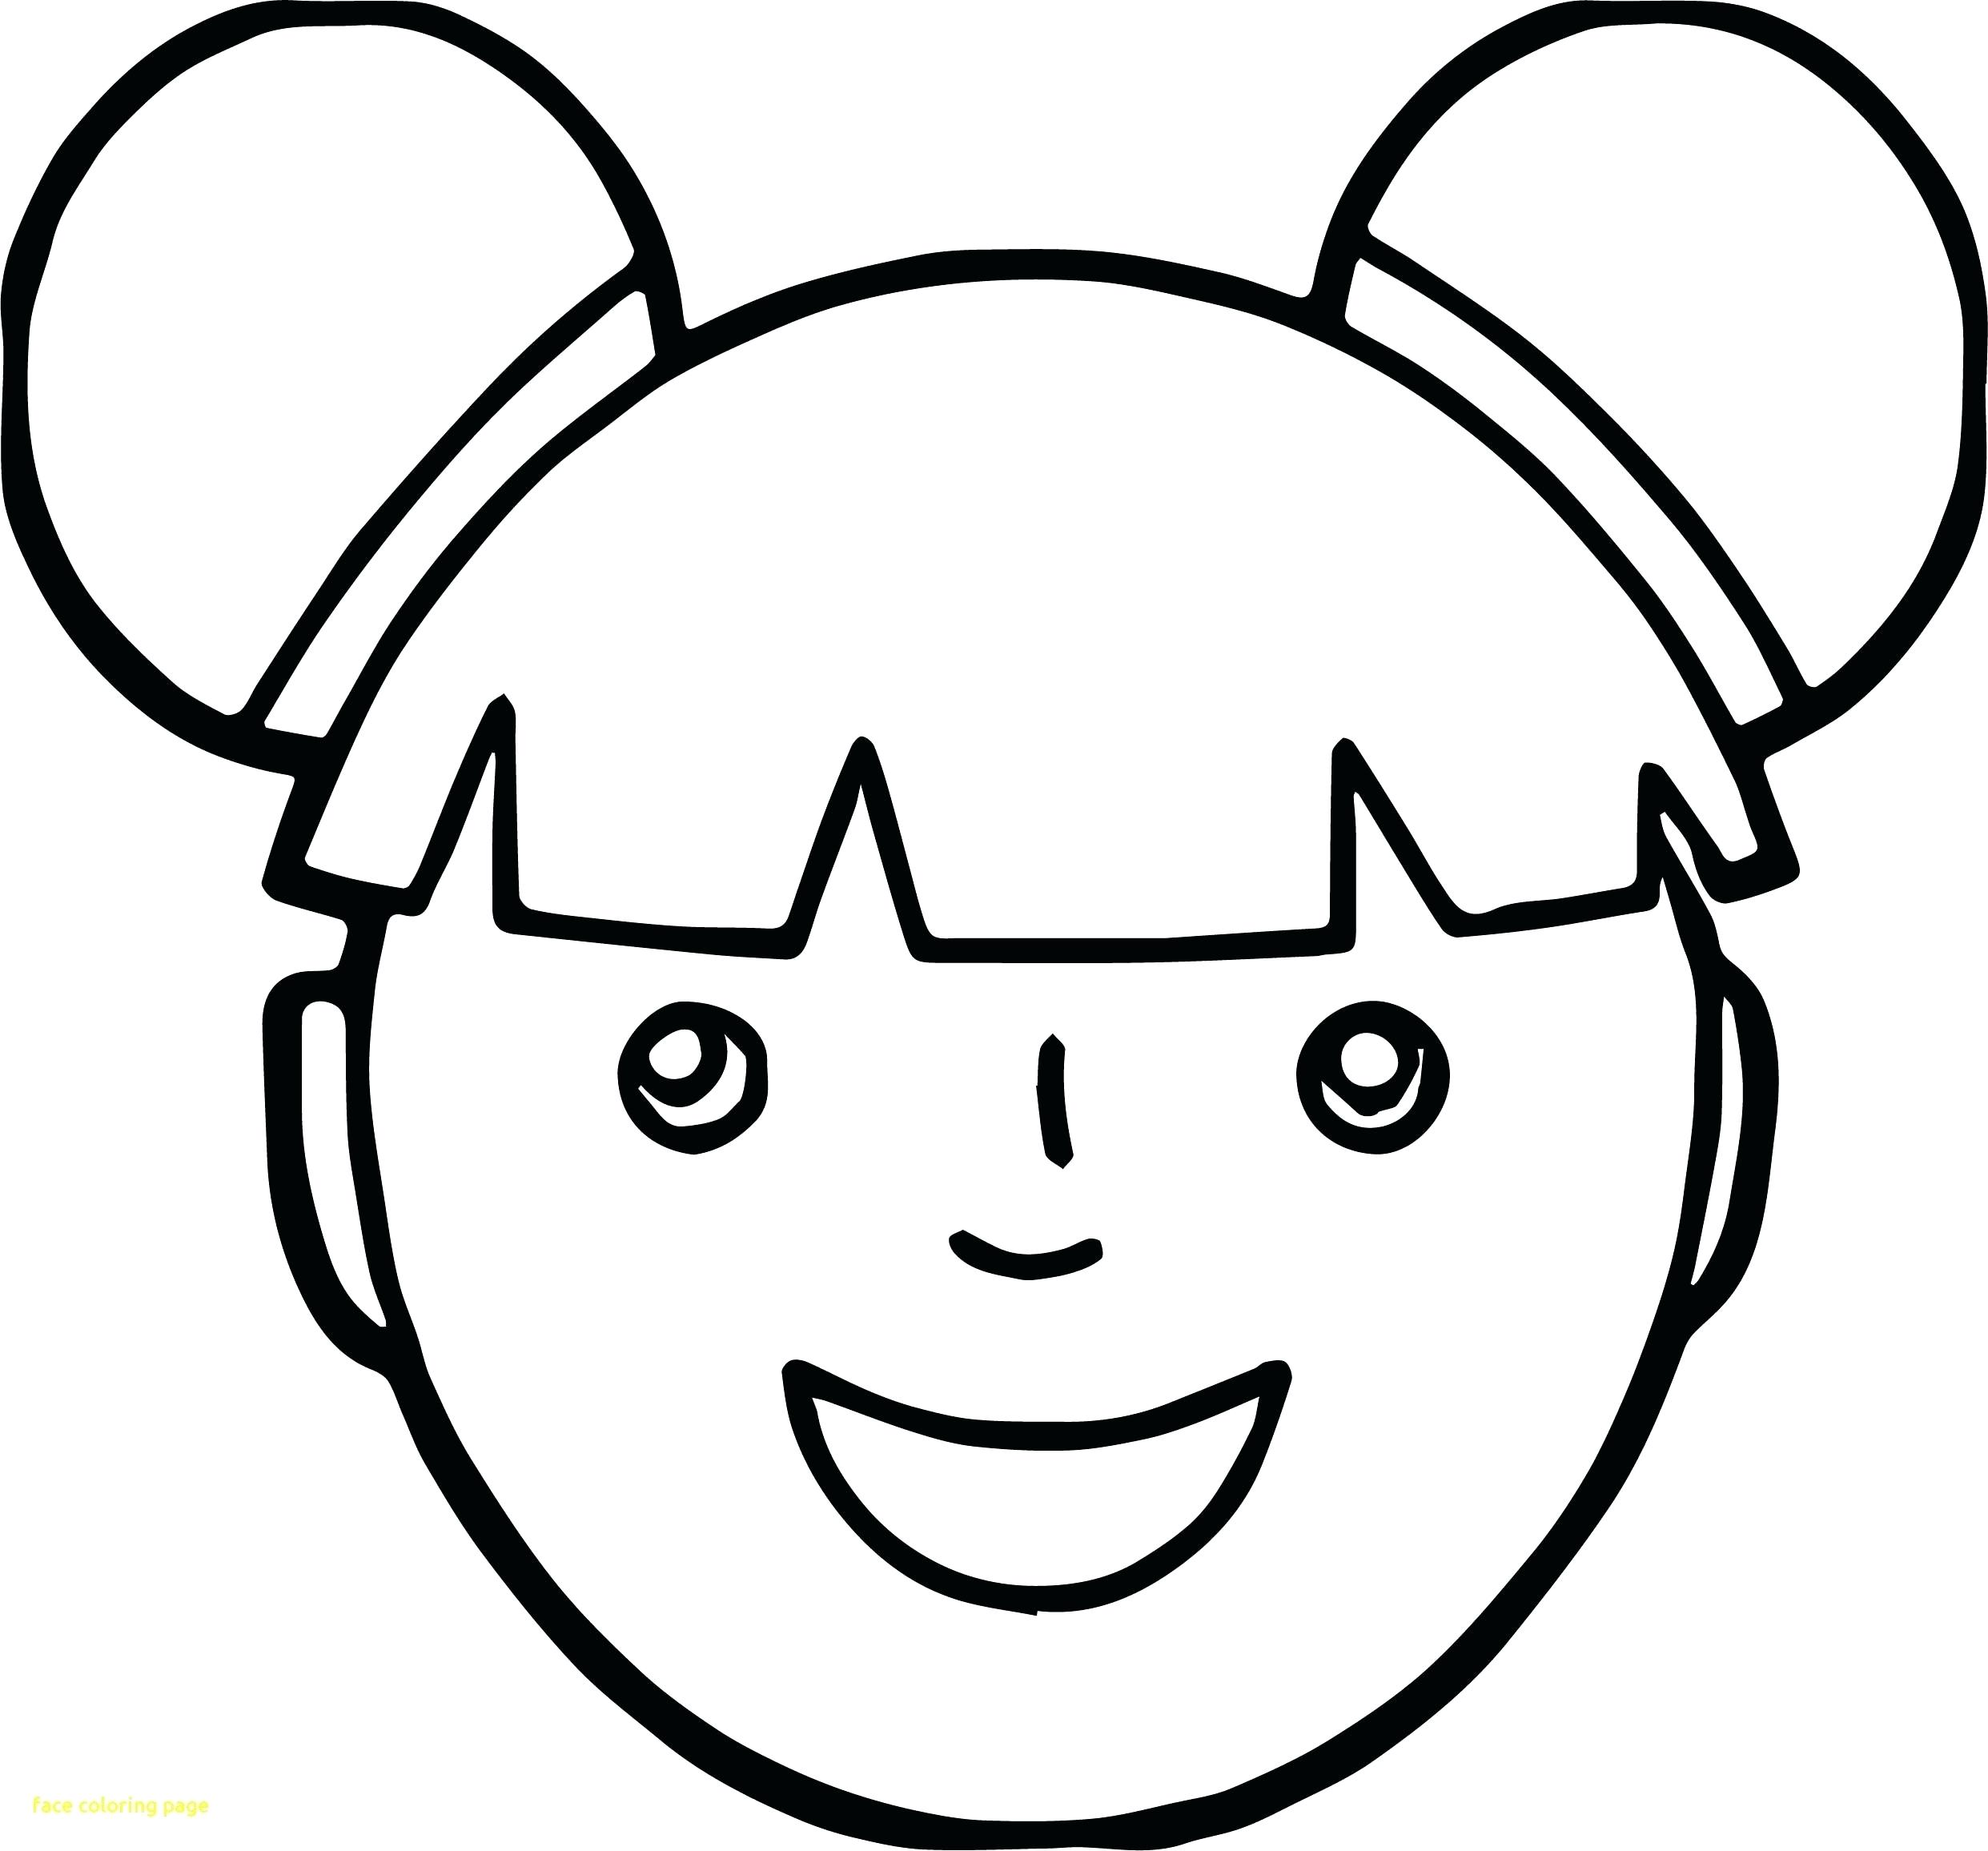 - Smiley Faces Coloring Pages - Coloring Home